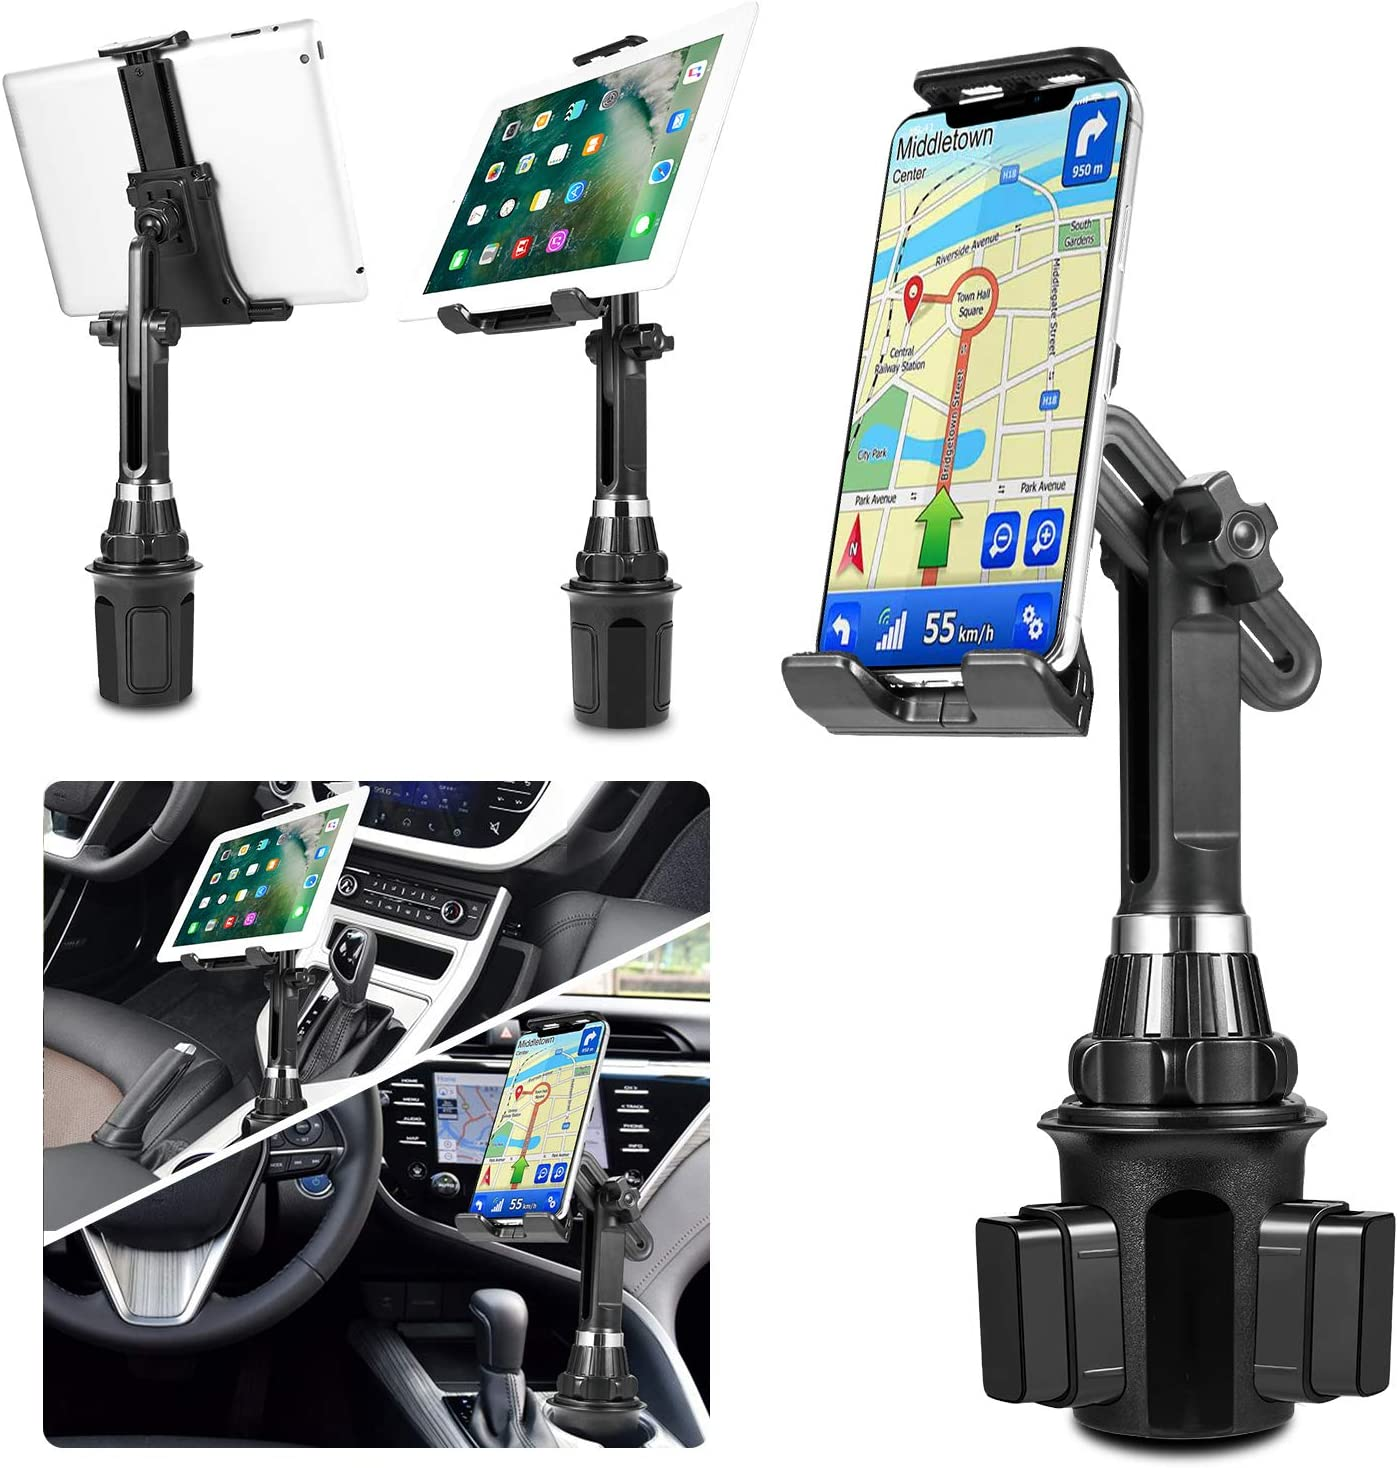 "Samsung LUXMO Cup Holder Phone Mount /& Tablet Holder for Car Galaxy Tab Under 12.9/""Tablet 2-in-1 Car Cradles with Adjustable Neck Extended Cup Holder for Cell Phone iPhone Google /& iPad Air//Mini"